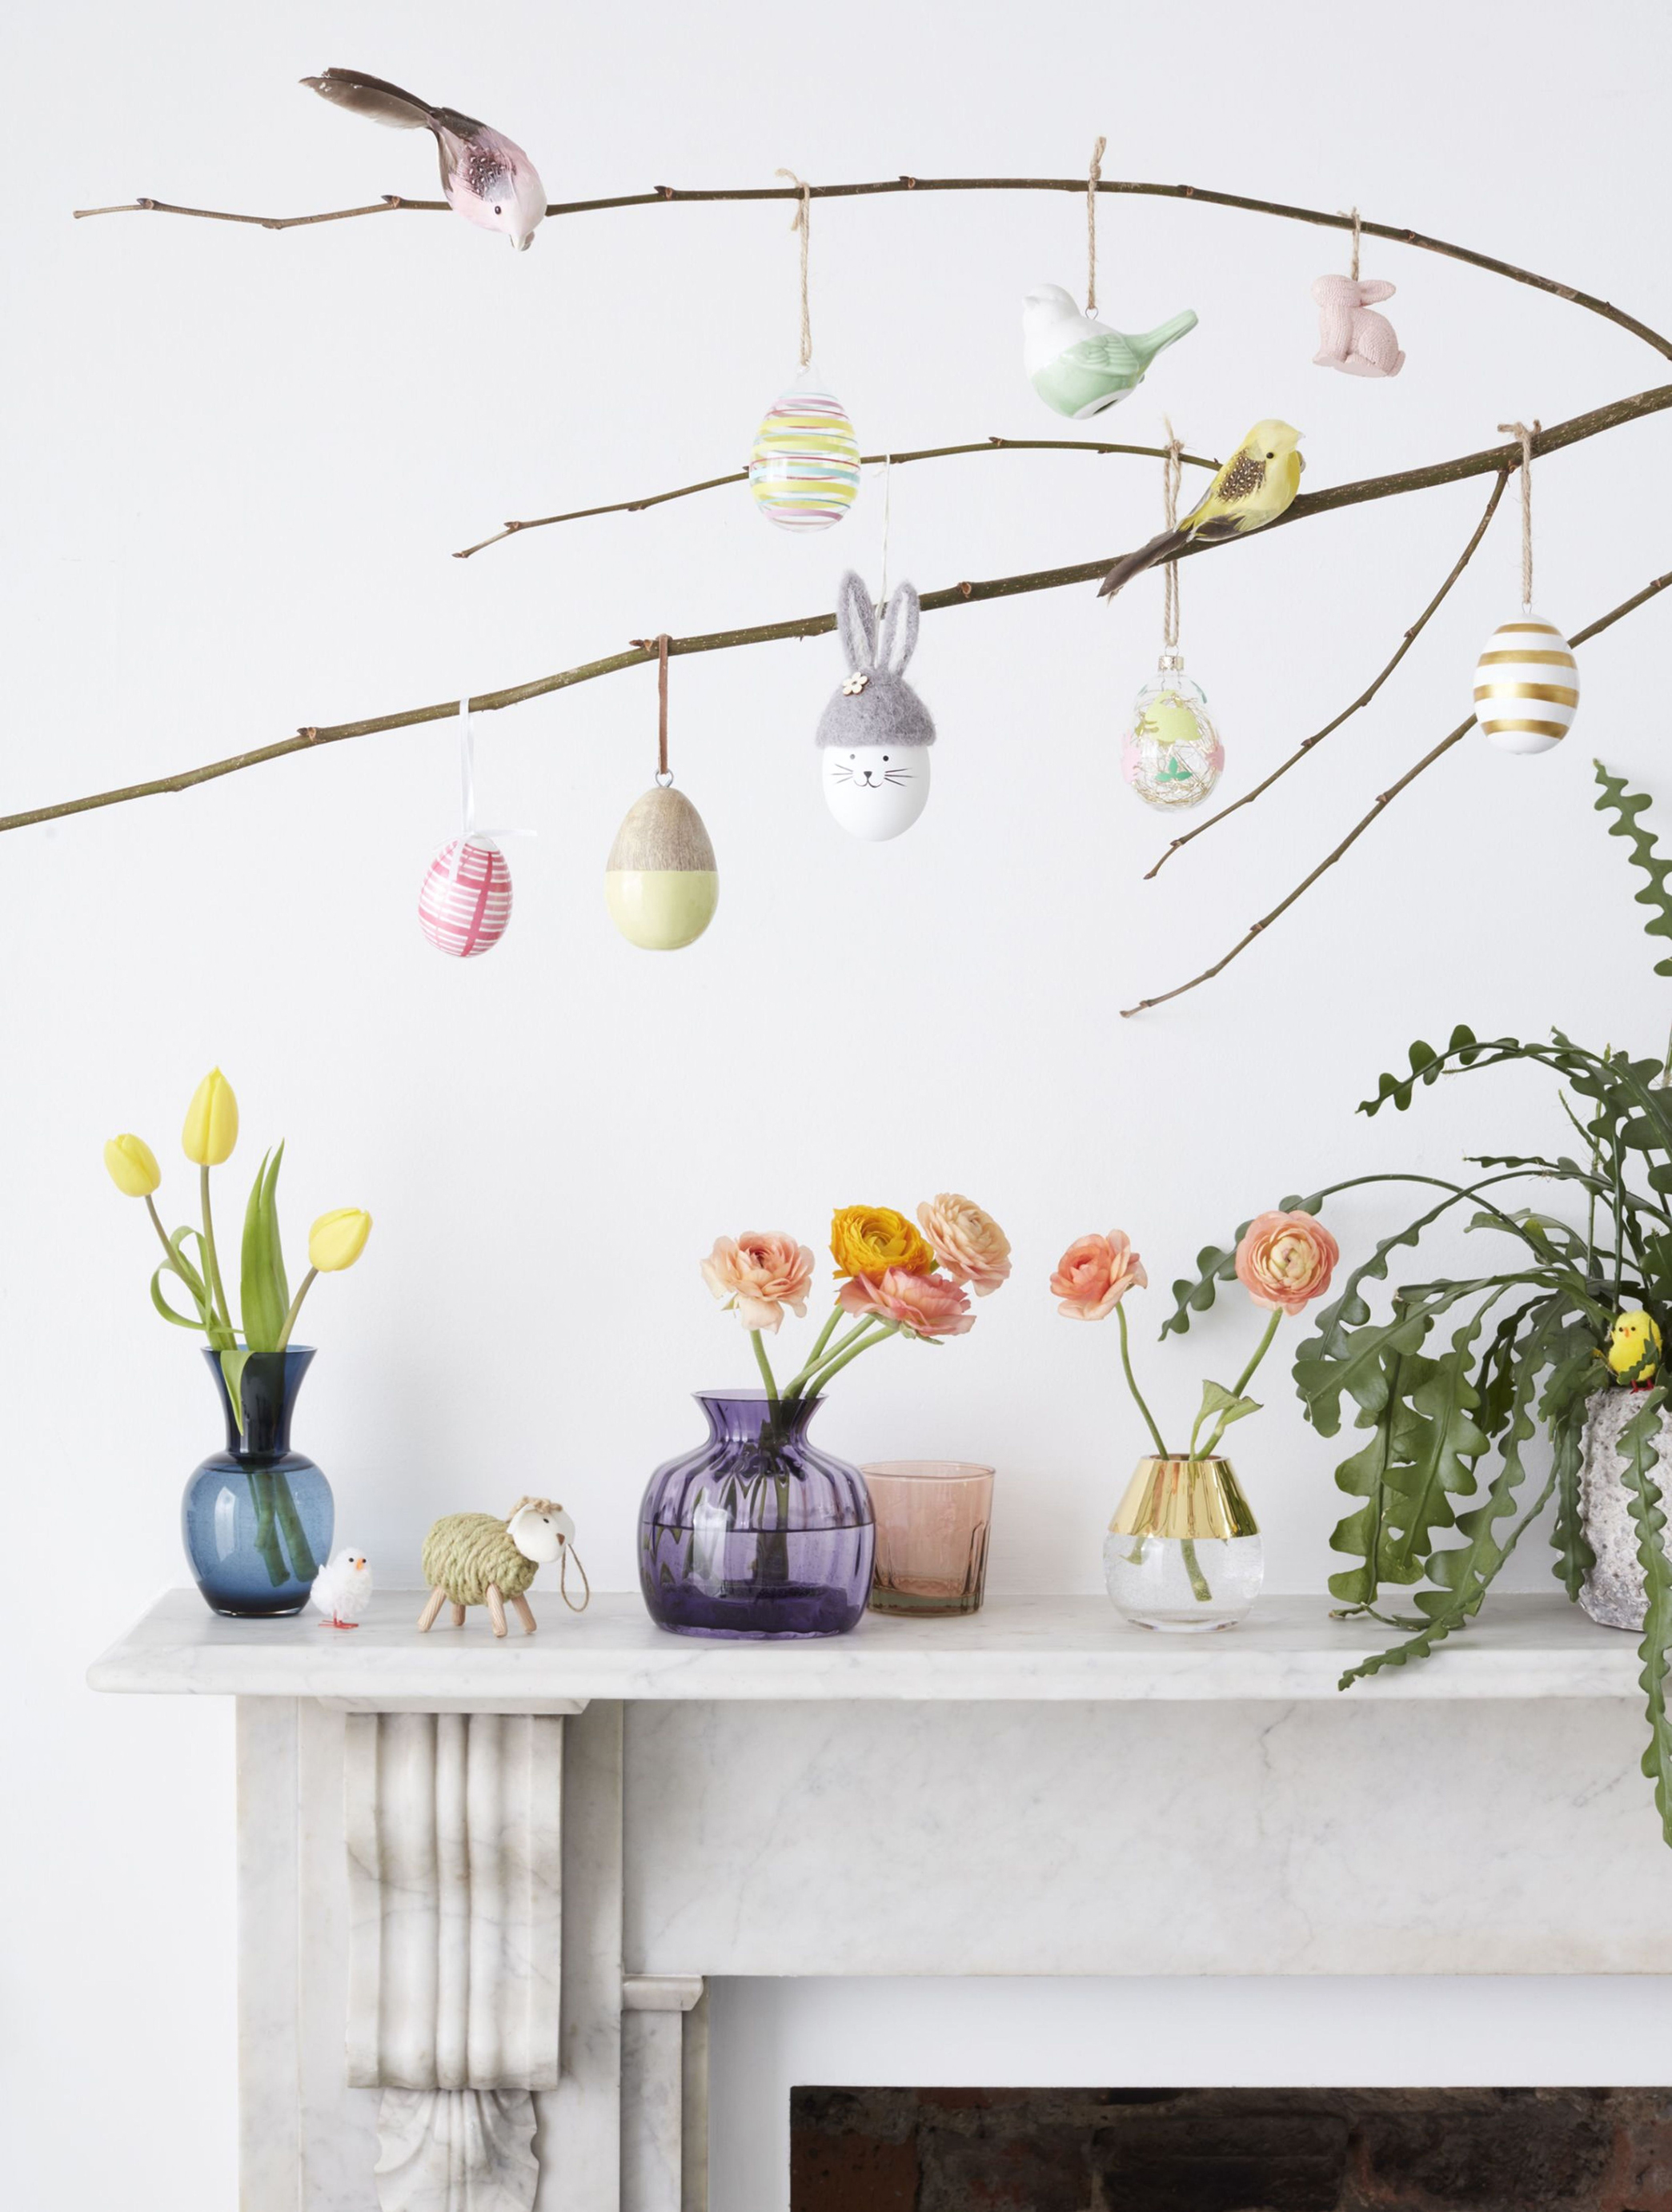 farmhouse style sweetly and design decor modern ideas brunch chic famhouse easter events decoration content